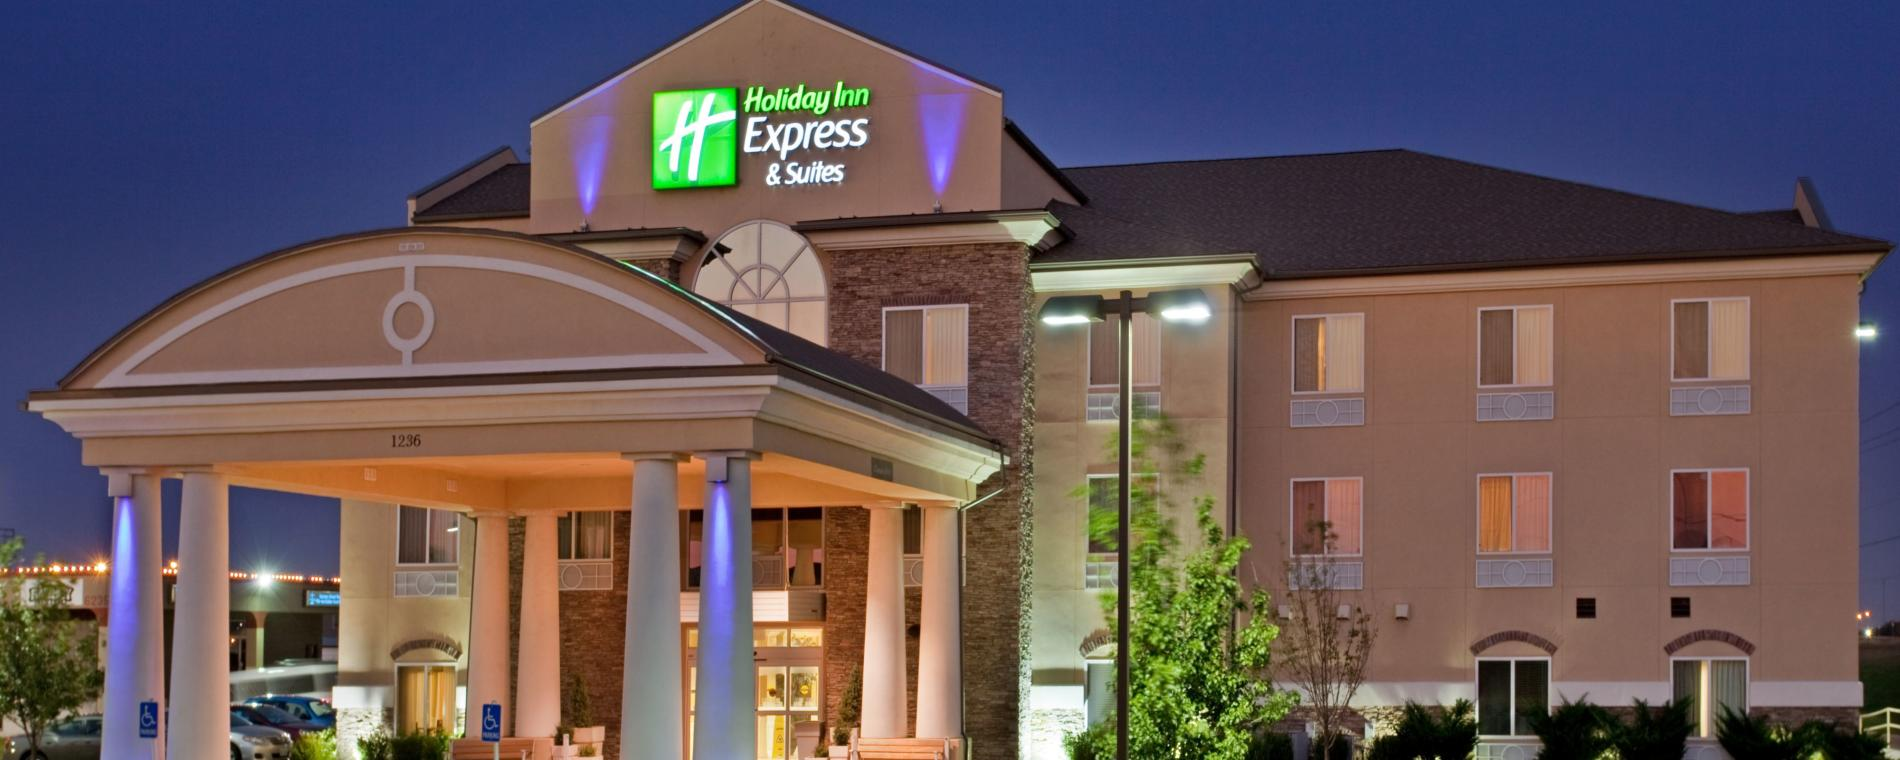 Holiday Inn Exp A/P Exterior Visit Wichita